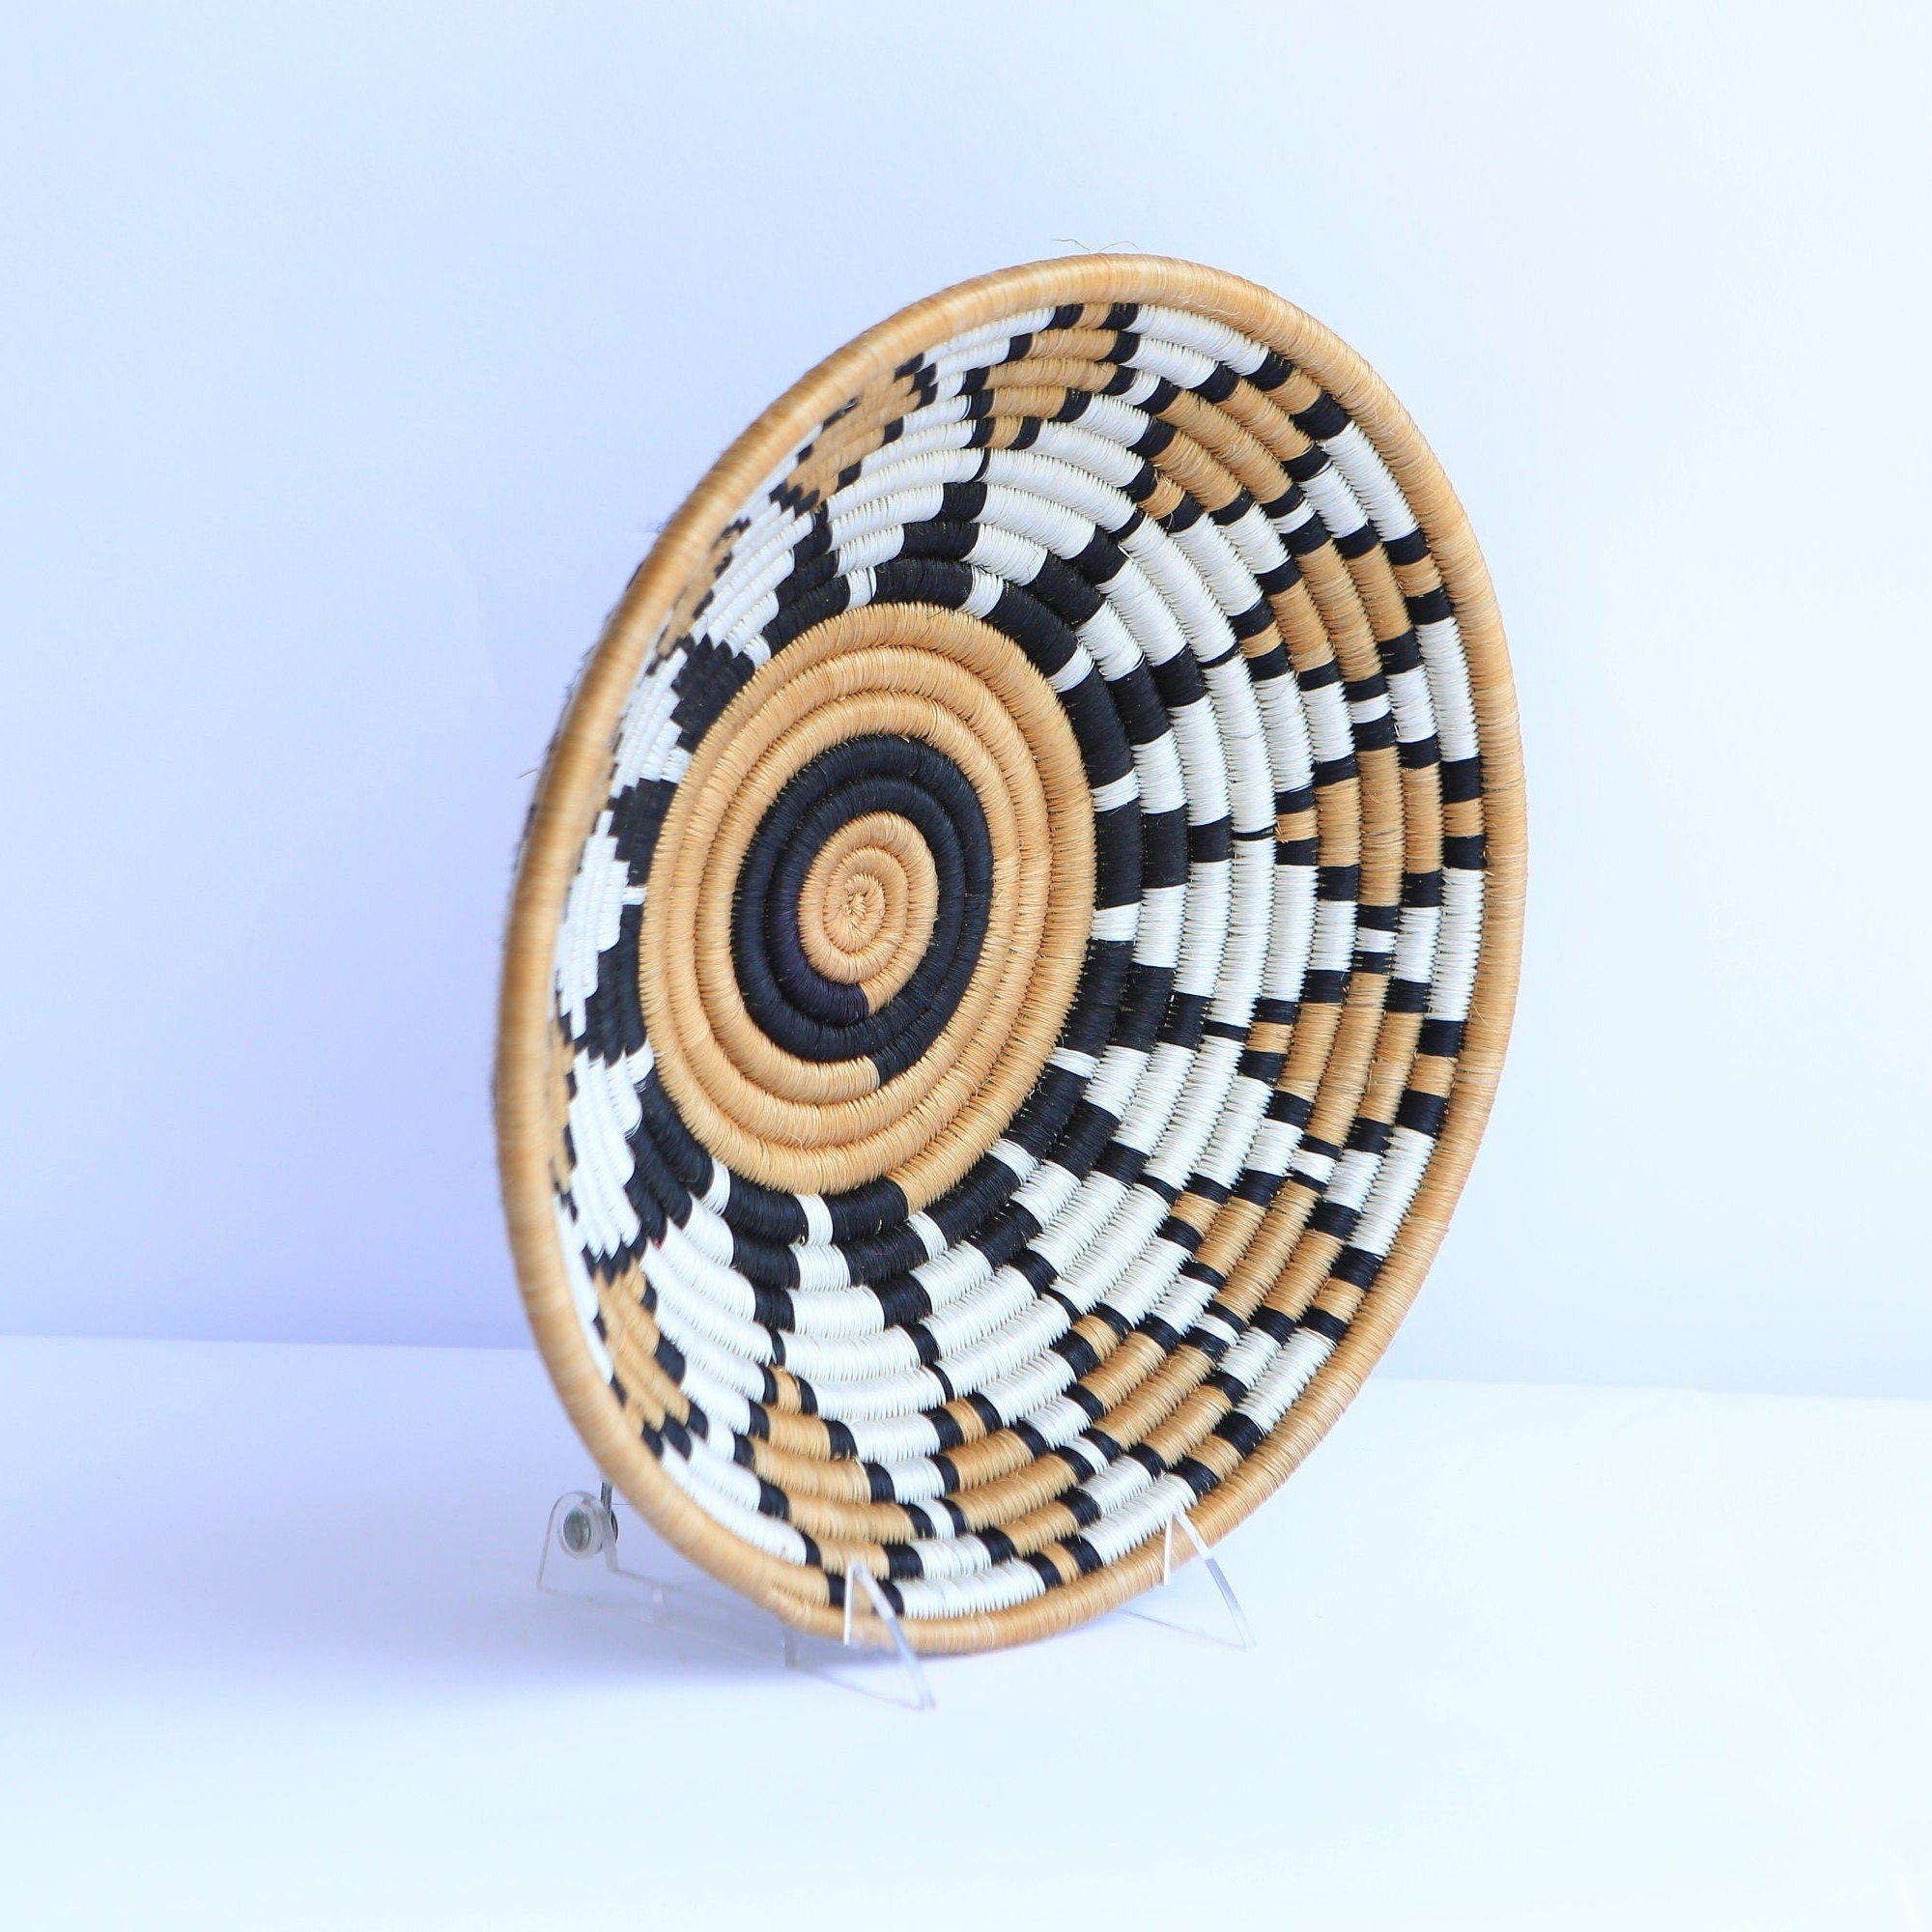 Igongo African Wall Basket, Rwanda baskets, African Woven basket,  Brown, Black and White - African Baskets , African Basket , Rwanda Baskets , Wall baskets Woven Basket